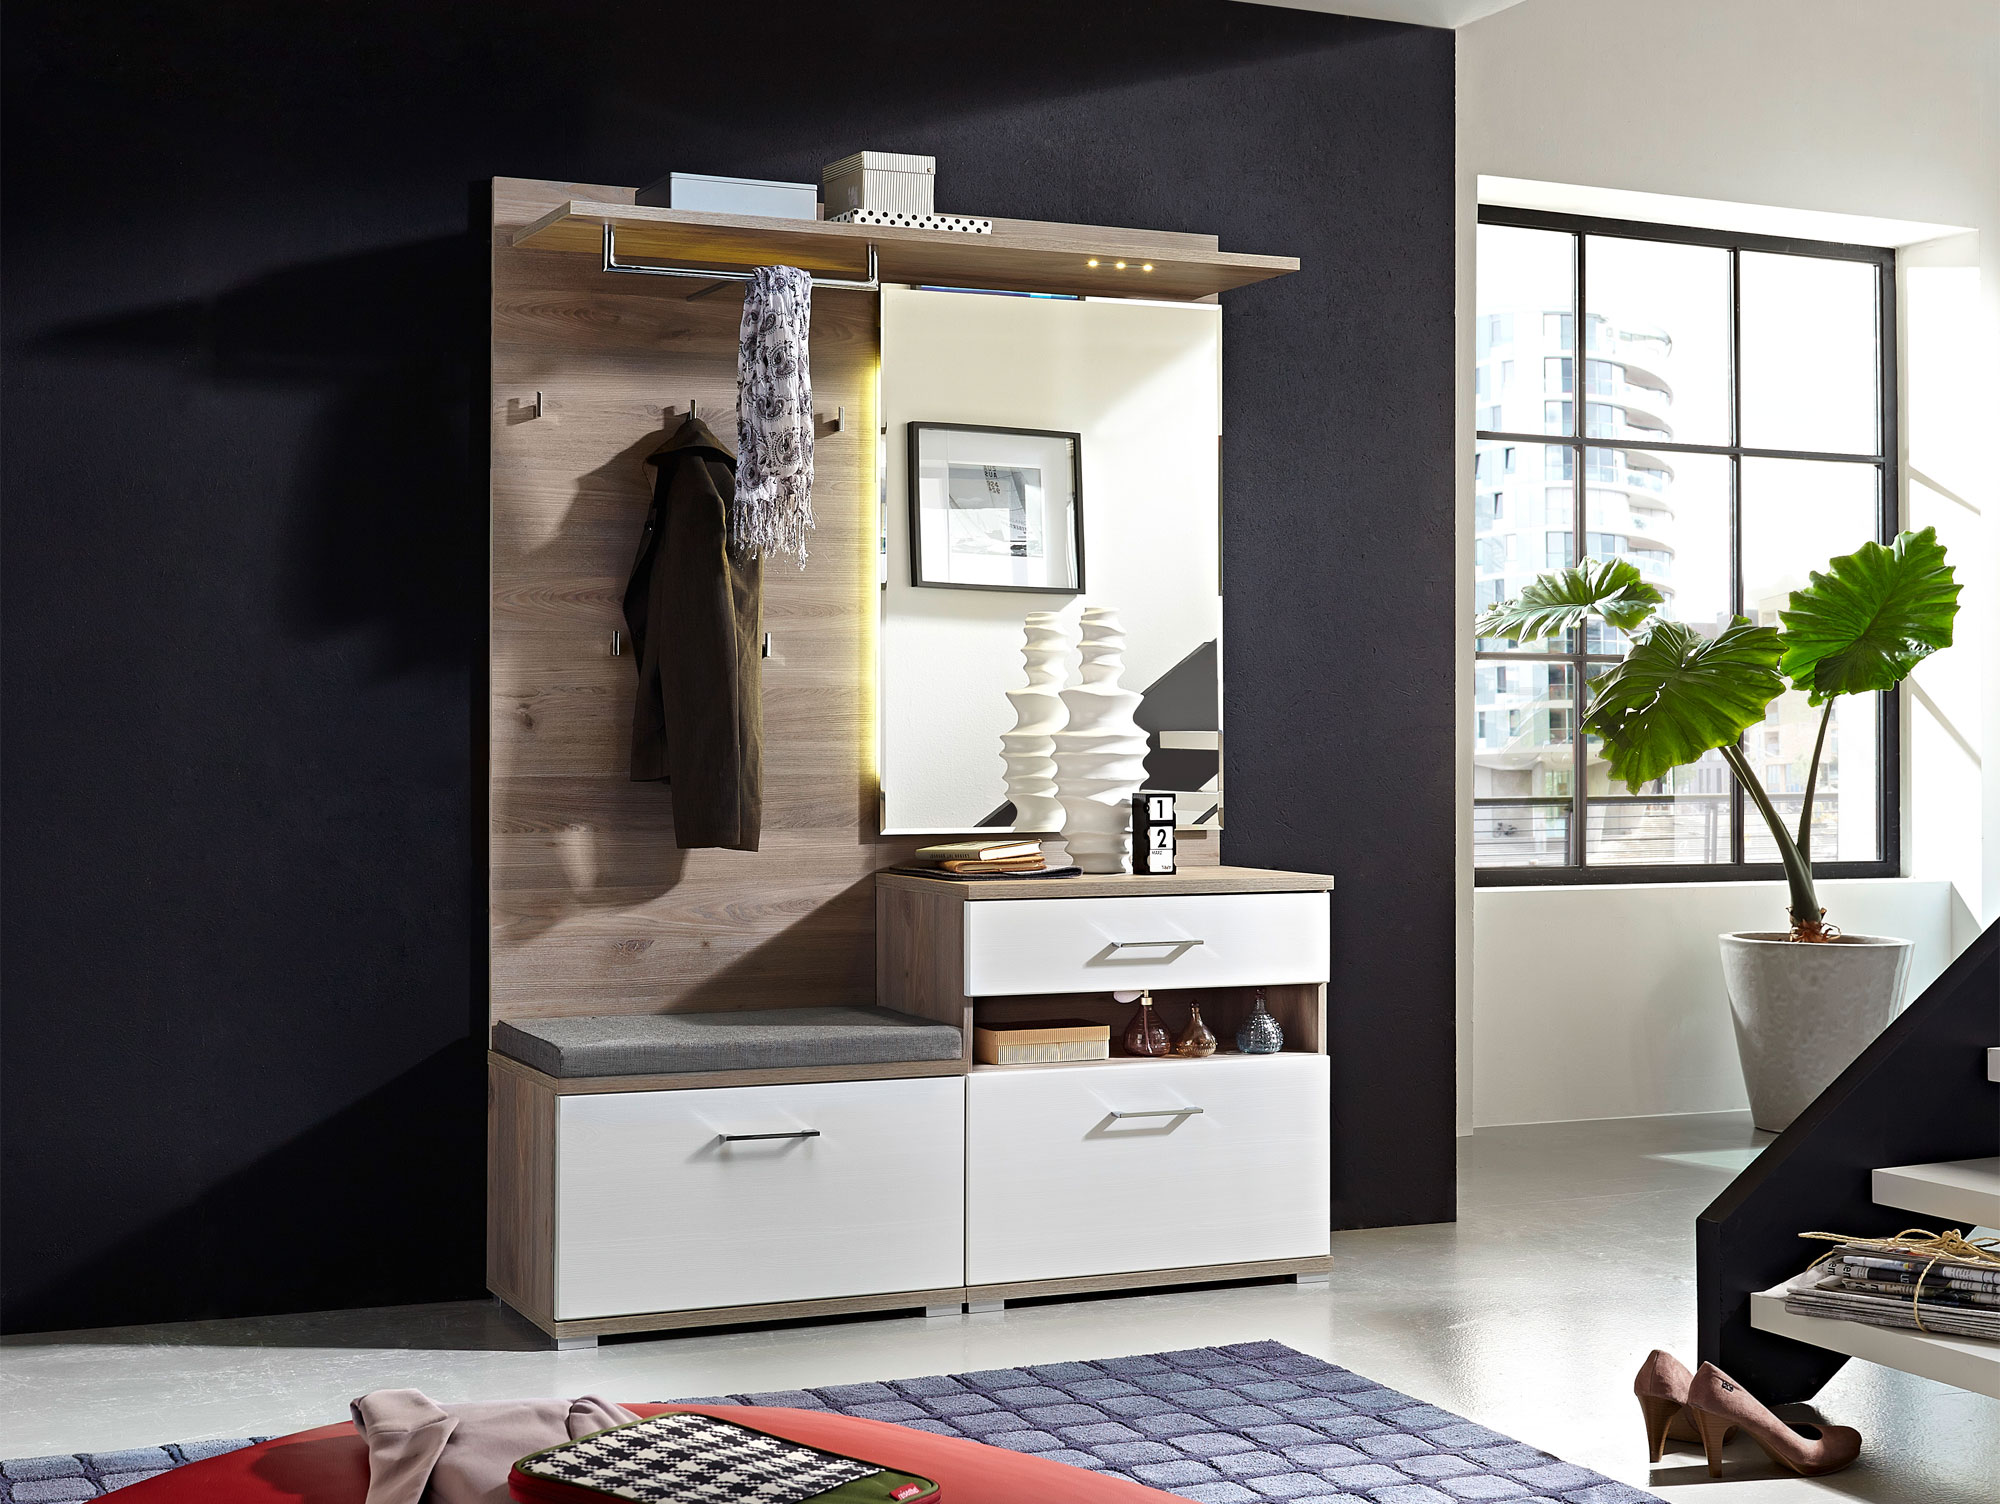 garderobe mit sitzbank weiss g nstig kaufen. Black Bedroom Furniture Sets. Home Design Ideas